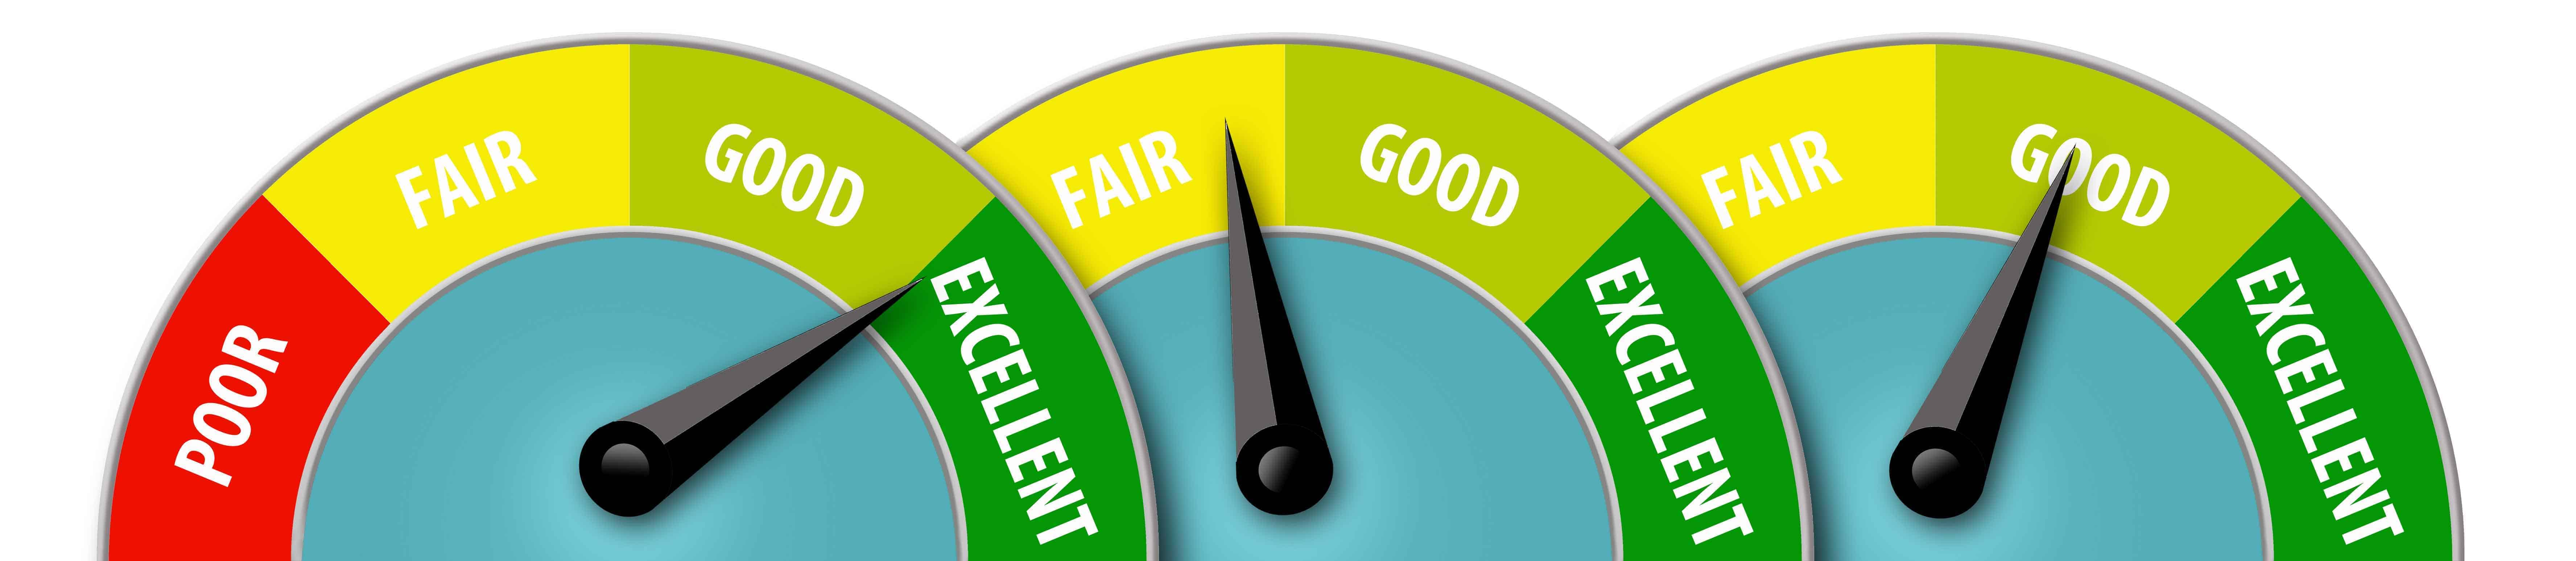 Choosing FHA for High Credit Scores